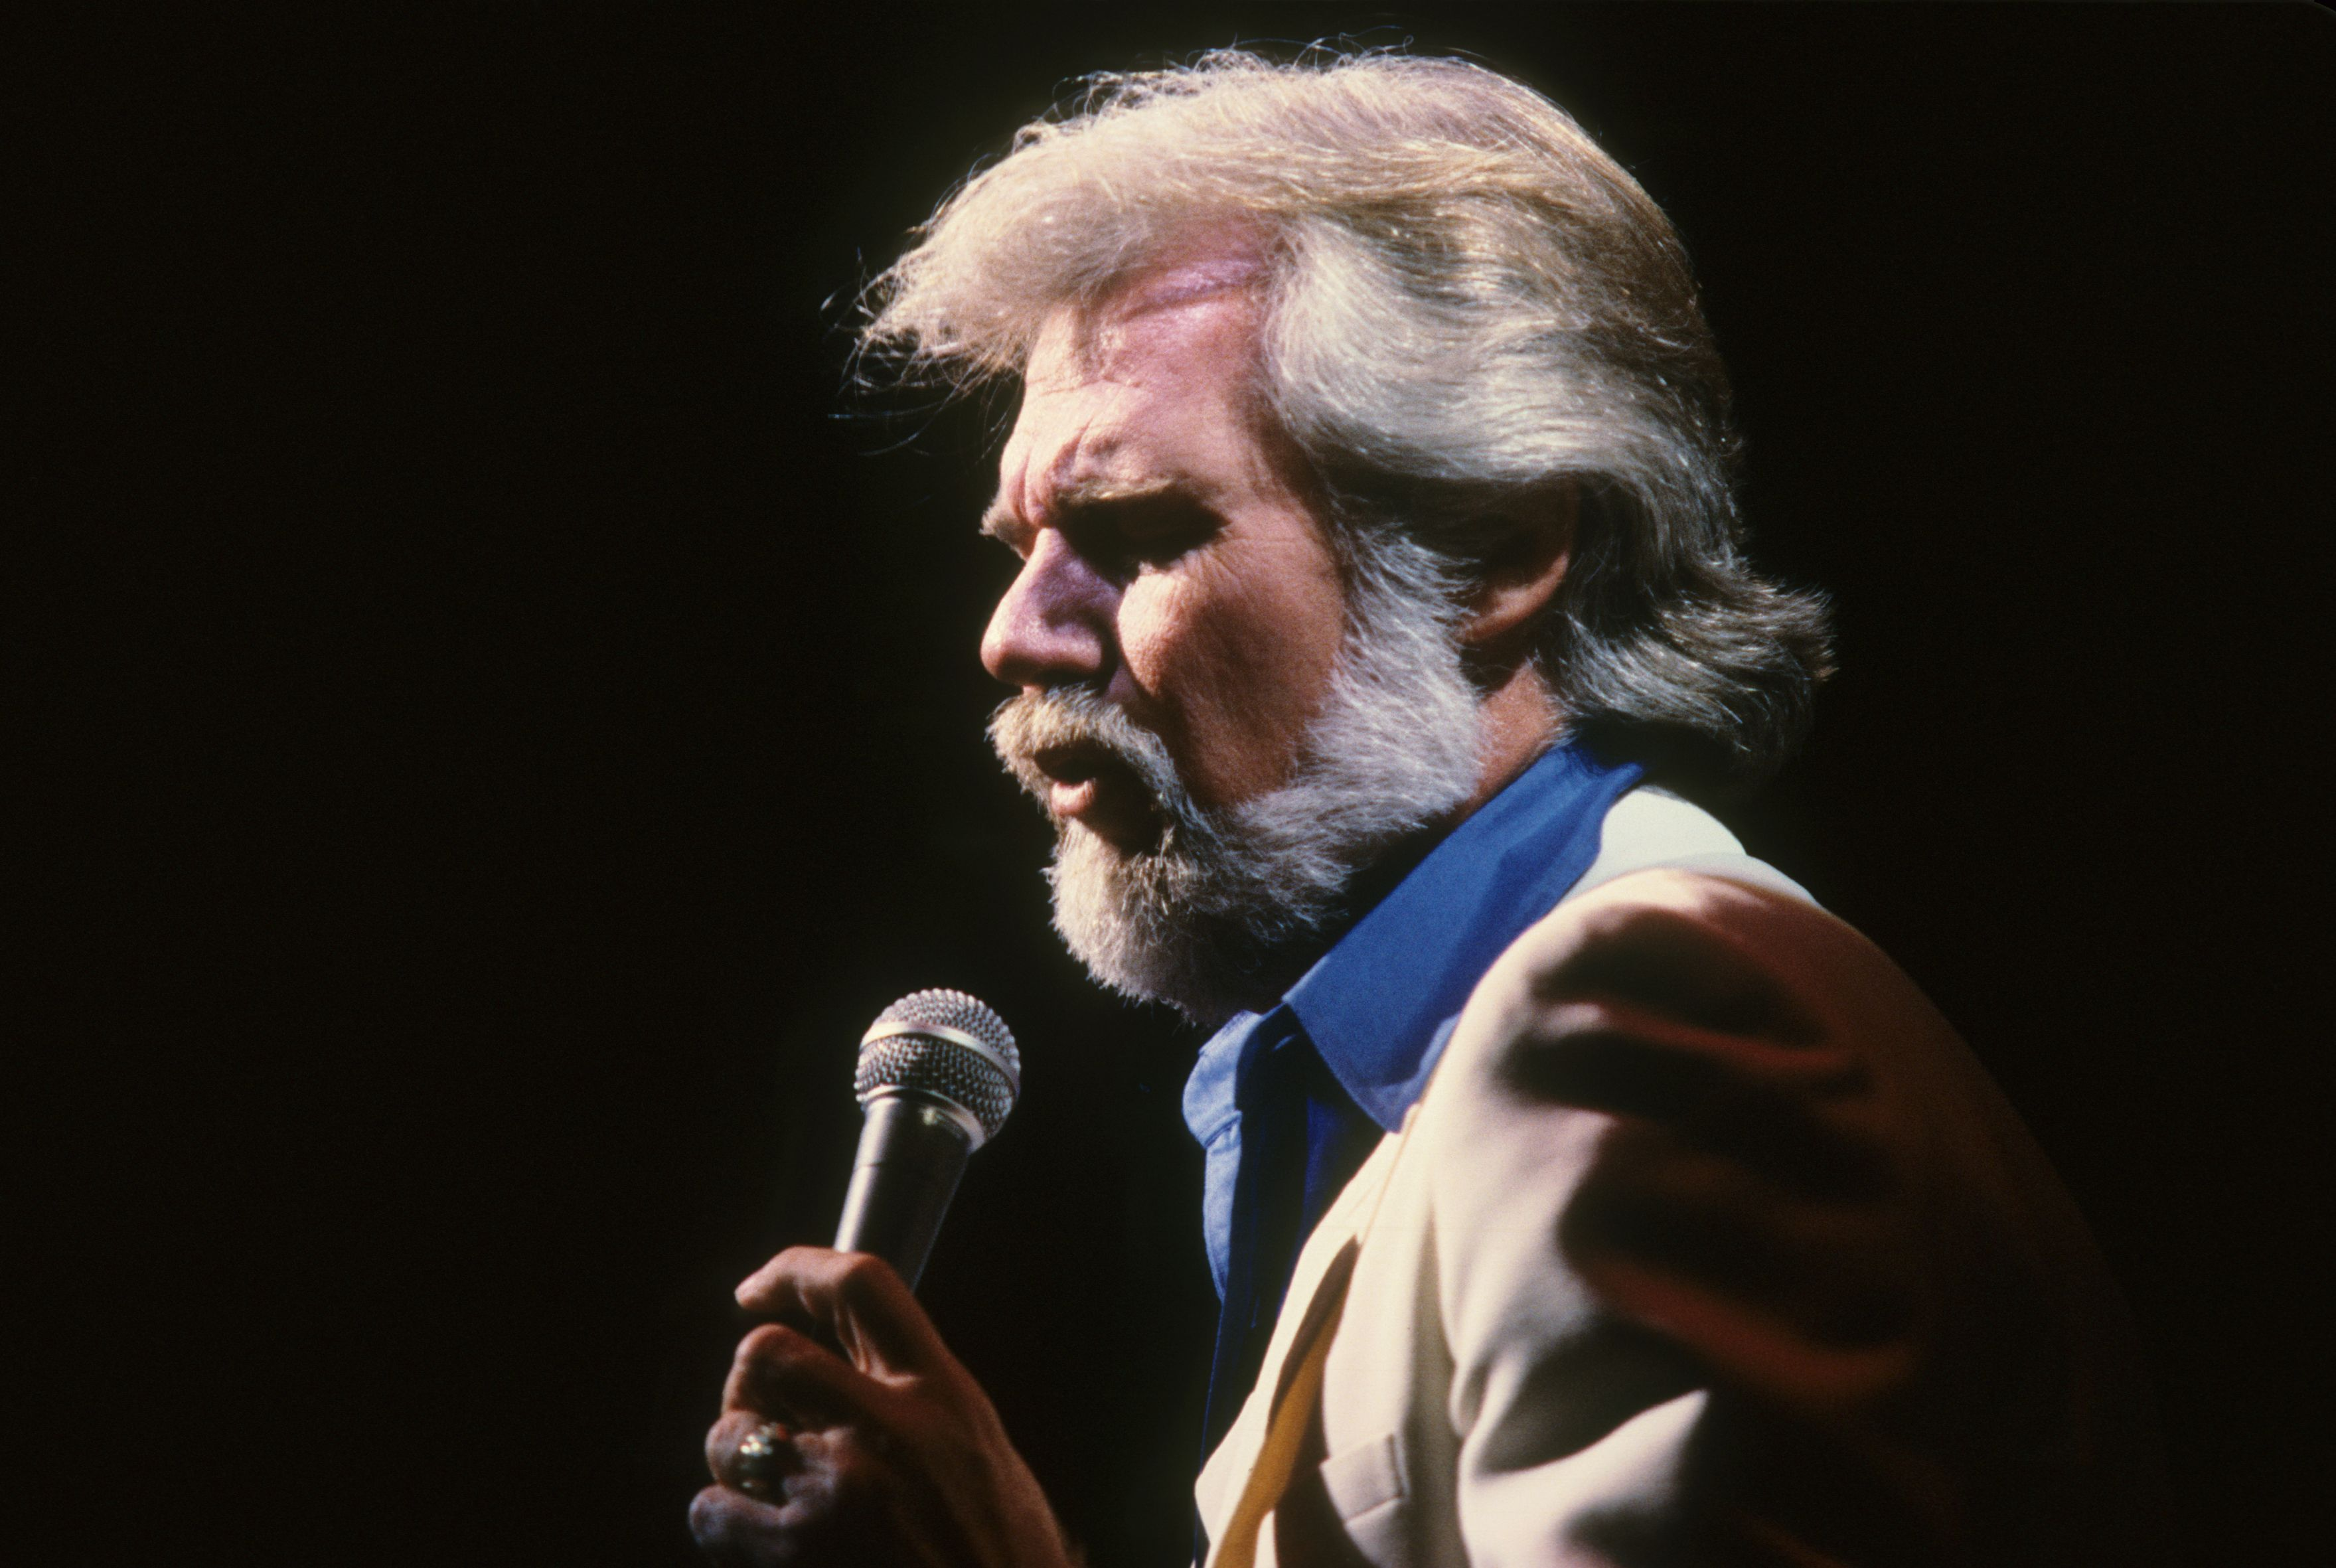 The late Kenny Rogers during a performance.